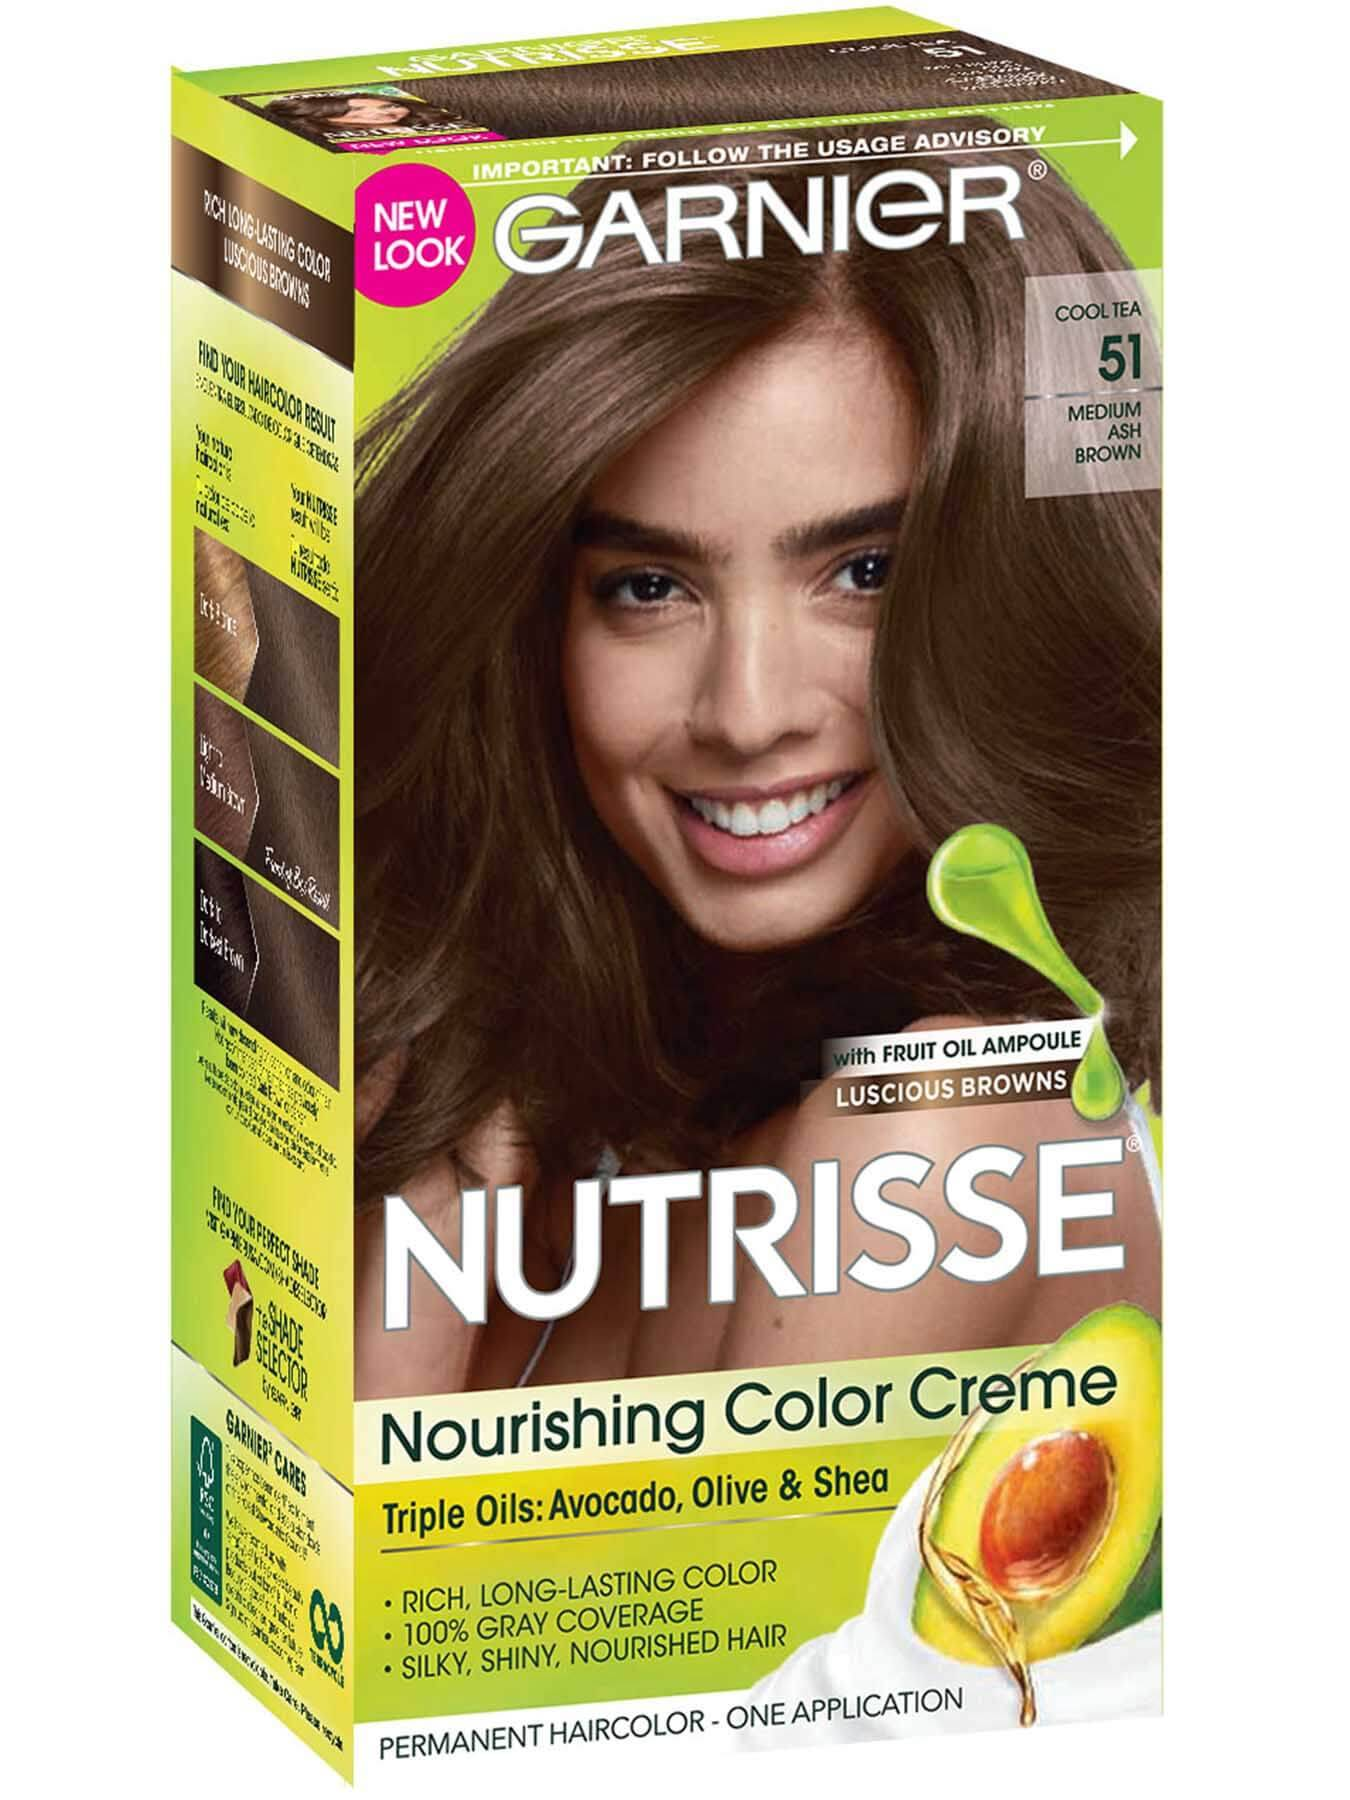 Nourishing Color Creme Medium Ash Brown 51 (Cool Tea).